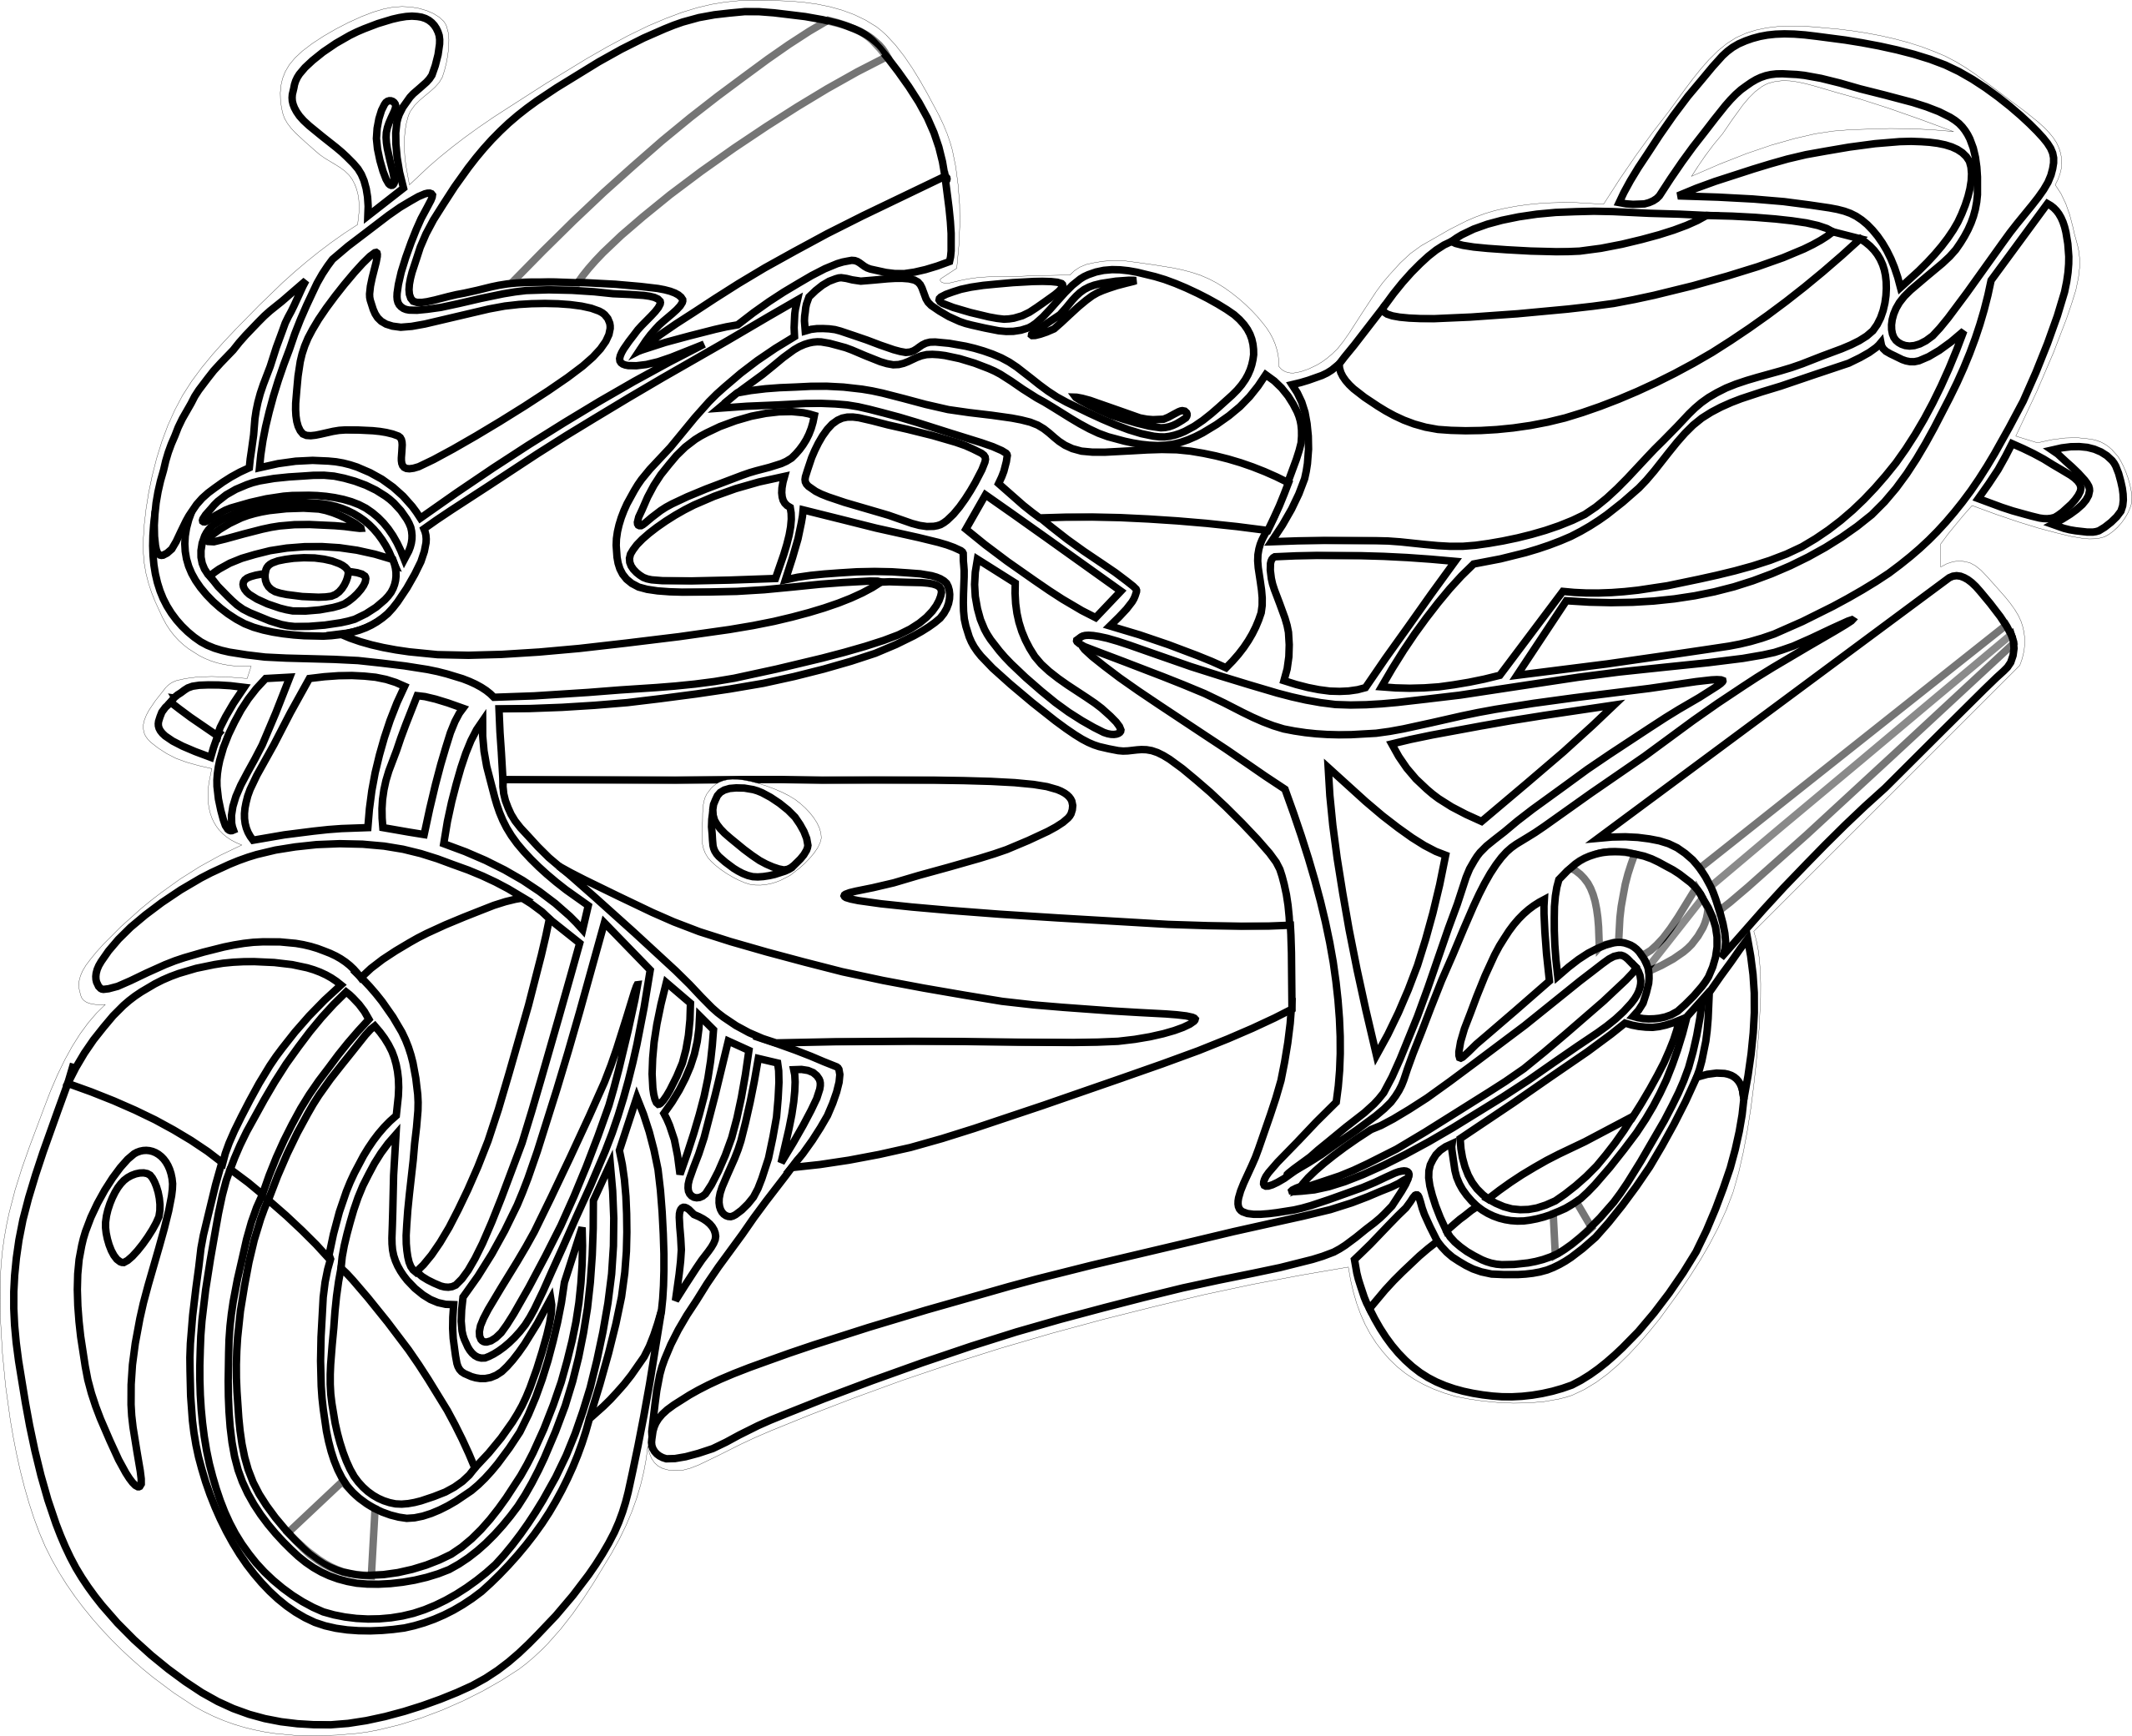 Honda clipart black and white Panda Motorcycle Free And Clipart